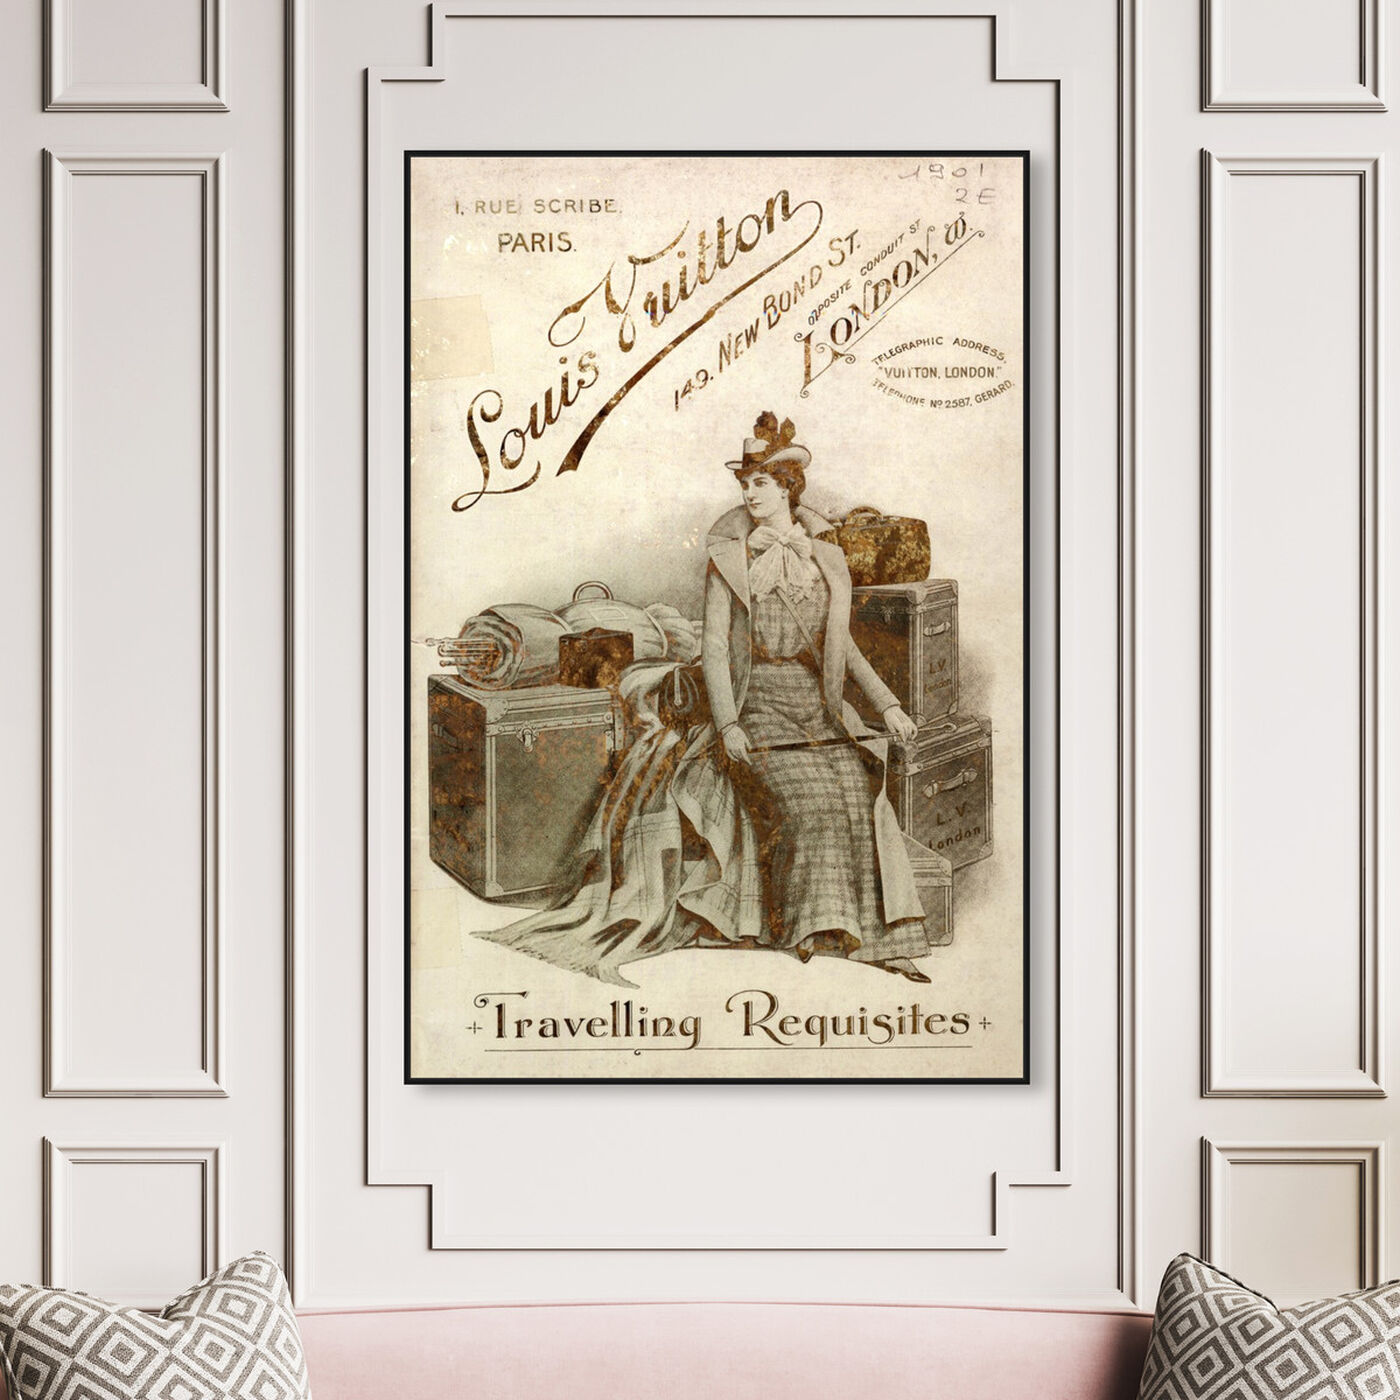 Hanging view of Travelling Requisites featuring fashion and glam and travel essentials art.